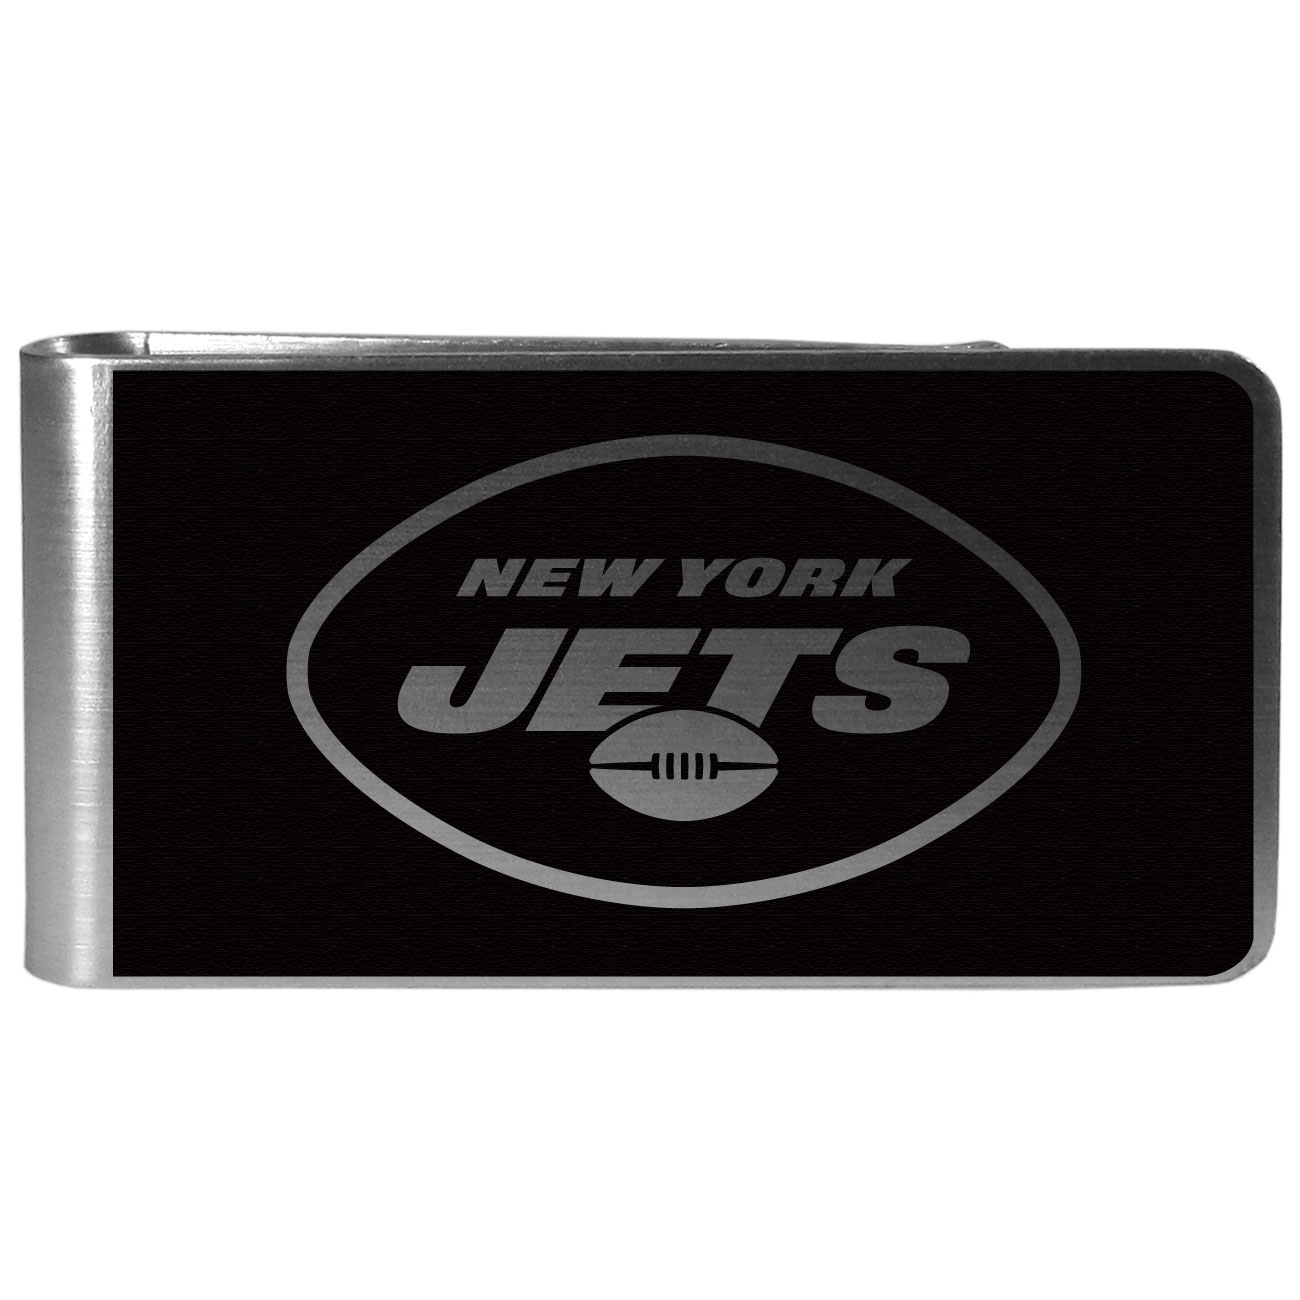 New York Jets Black and Steel Money Clip - Our monochromatic steel money clips have a classic style and superior quality. The strong, steel clip has a black overlay of the New York Jets logo over the brushed metal finish creating a stylish men's fashion accessory that would make any fan proud.